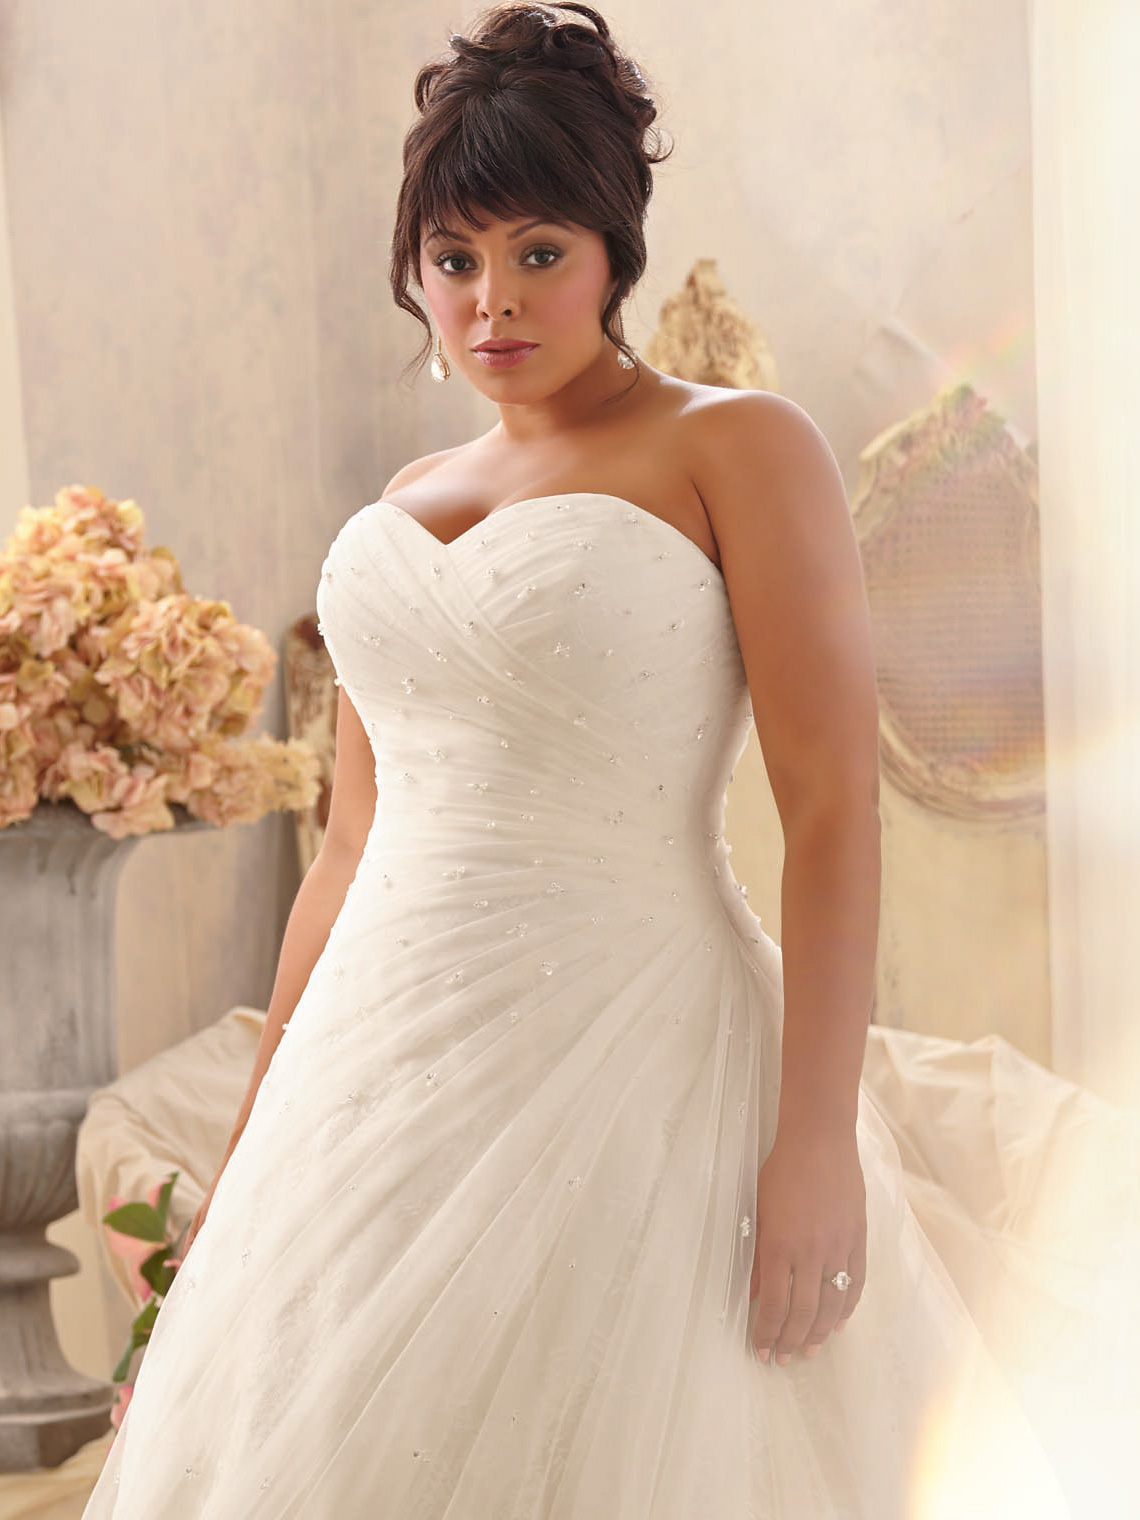 designer mori lee wedding gowns wedding dress julietta alencon lace appliques on tulle with beaded trim julietta wedding dress designer Mori Lee wedding gowns wedding dress julietta ALENCON LACE APPLIQUES ON TULLE WITH BEADED